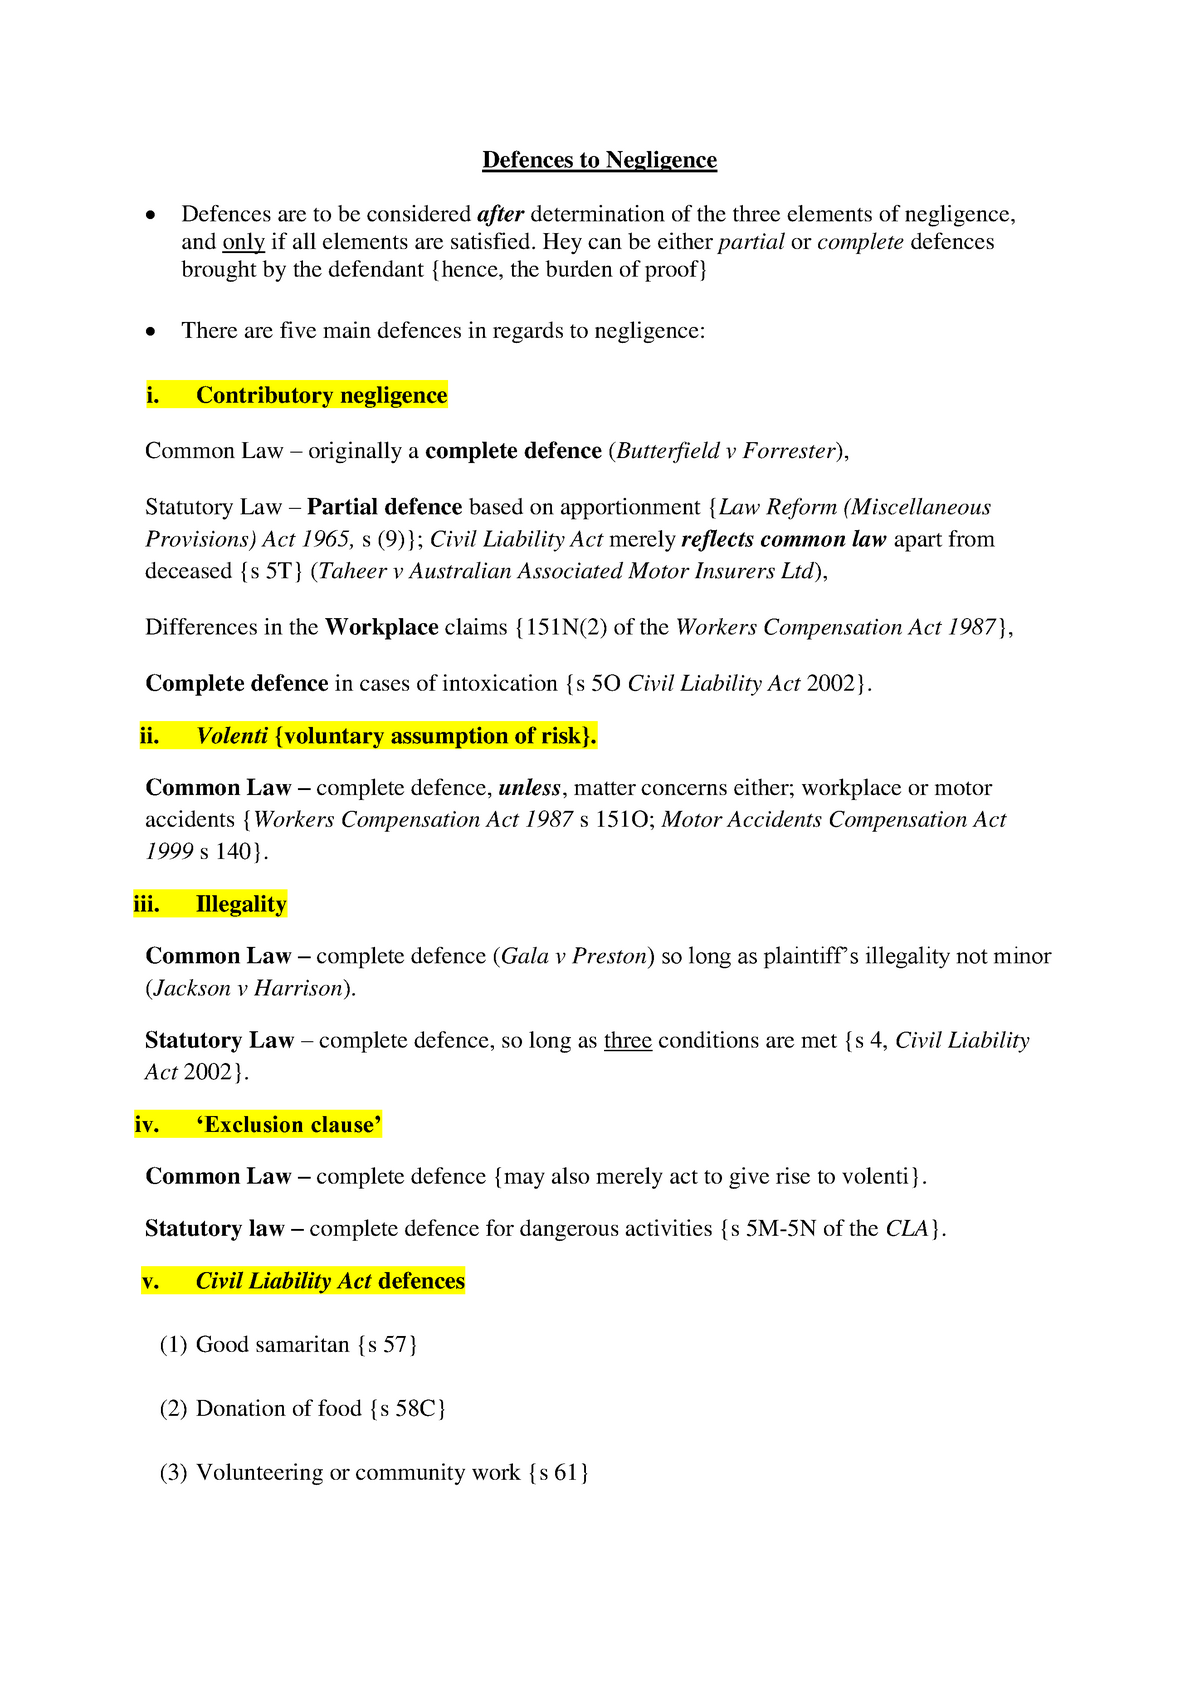 Lecture notes, defences - LAWS1003B Torts - Part B - UoN